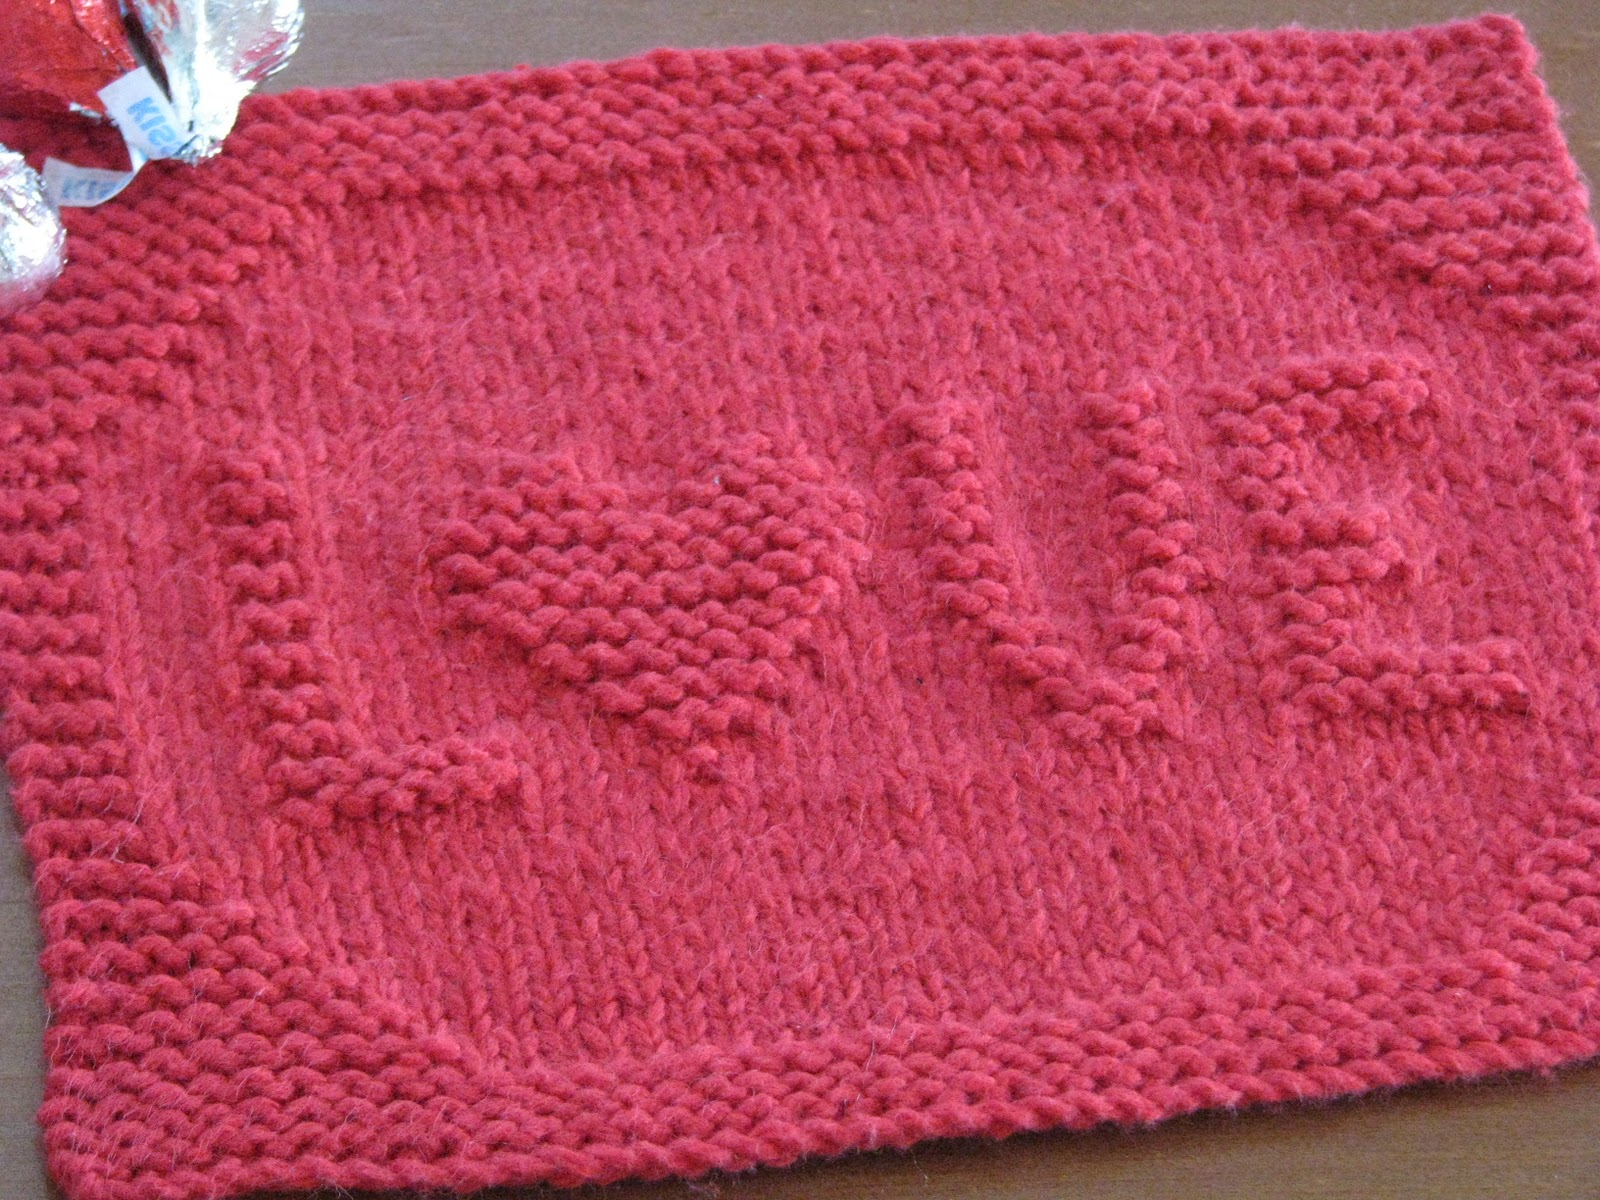 Knit Patterns For Dishcloths Free : Knitting Dishcloths Free Patterns